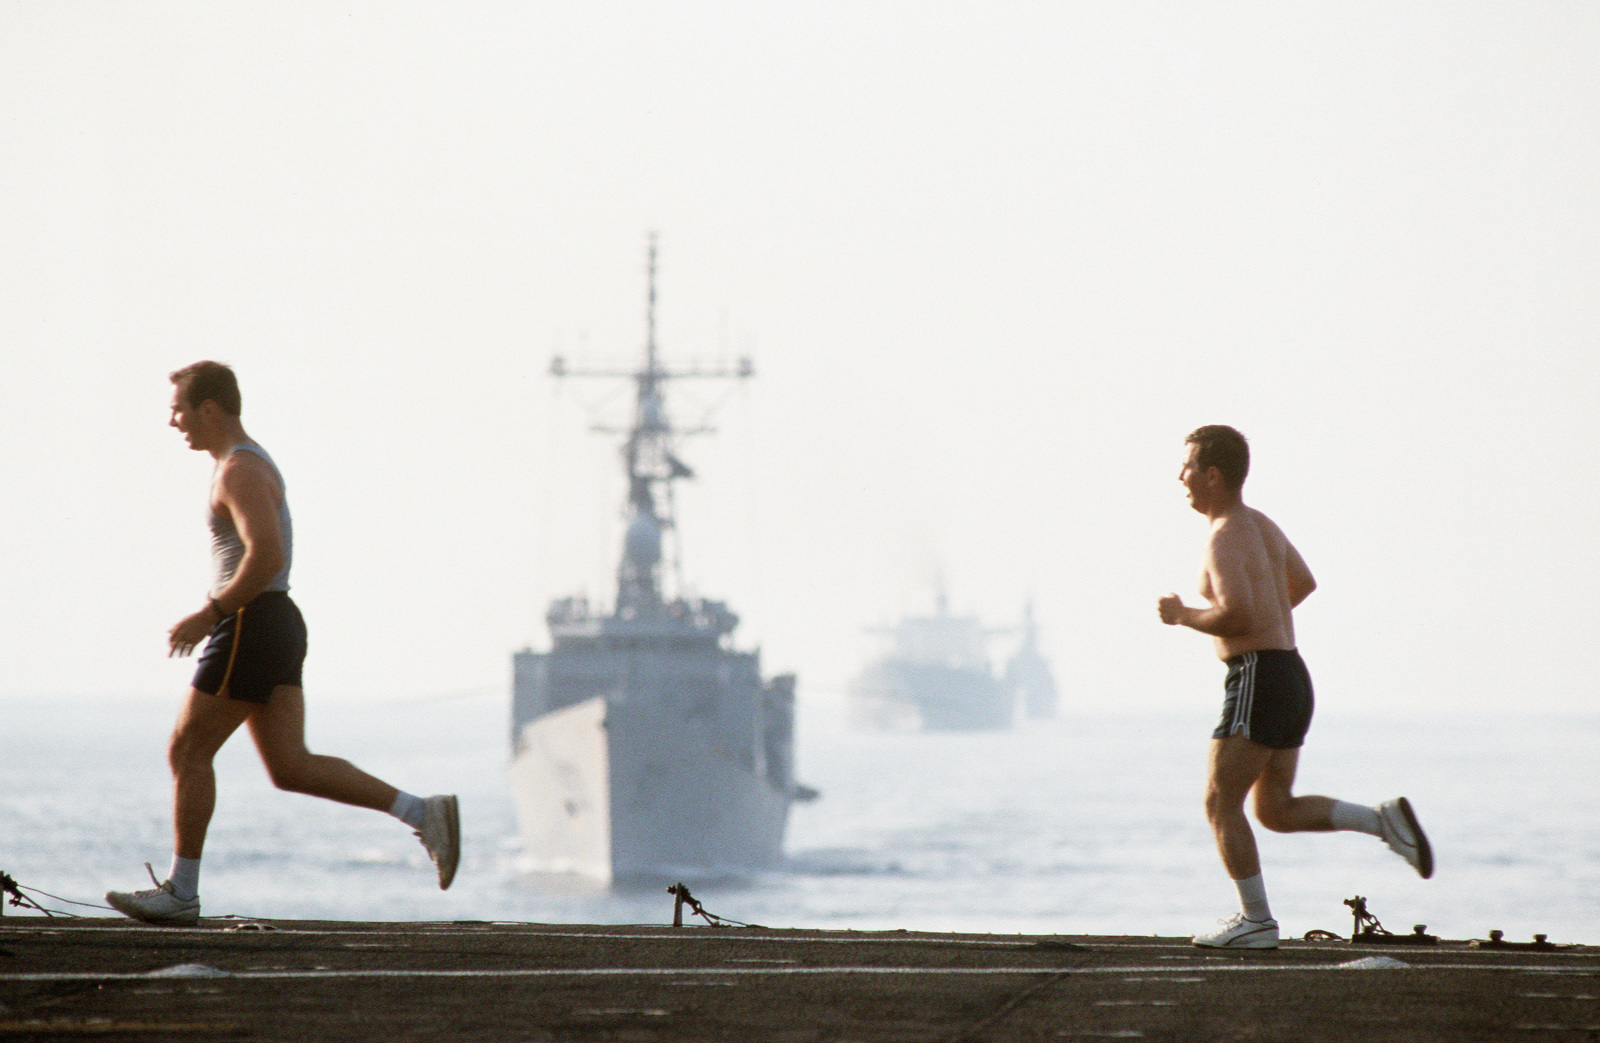 Persian Gulf.  Crew members jog along the aft edge of the deck of the amphibious transport dock USS RALEIGH (LPD 1) as it leads the guided missile frigate USS HAWES (FFG 53), the reflagged tanker GAS KING and the guided missile cruiser USS WILLIAM H. STANDLEY (CG 32) through the gulf.  The ships are part of the tanker convoy No. 12